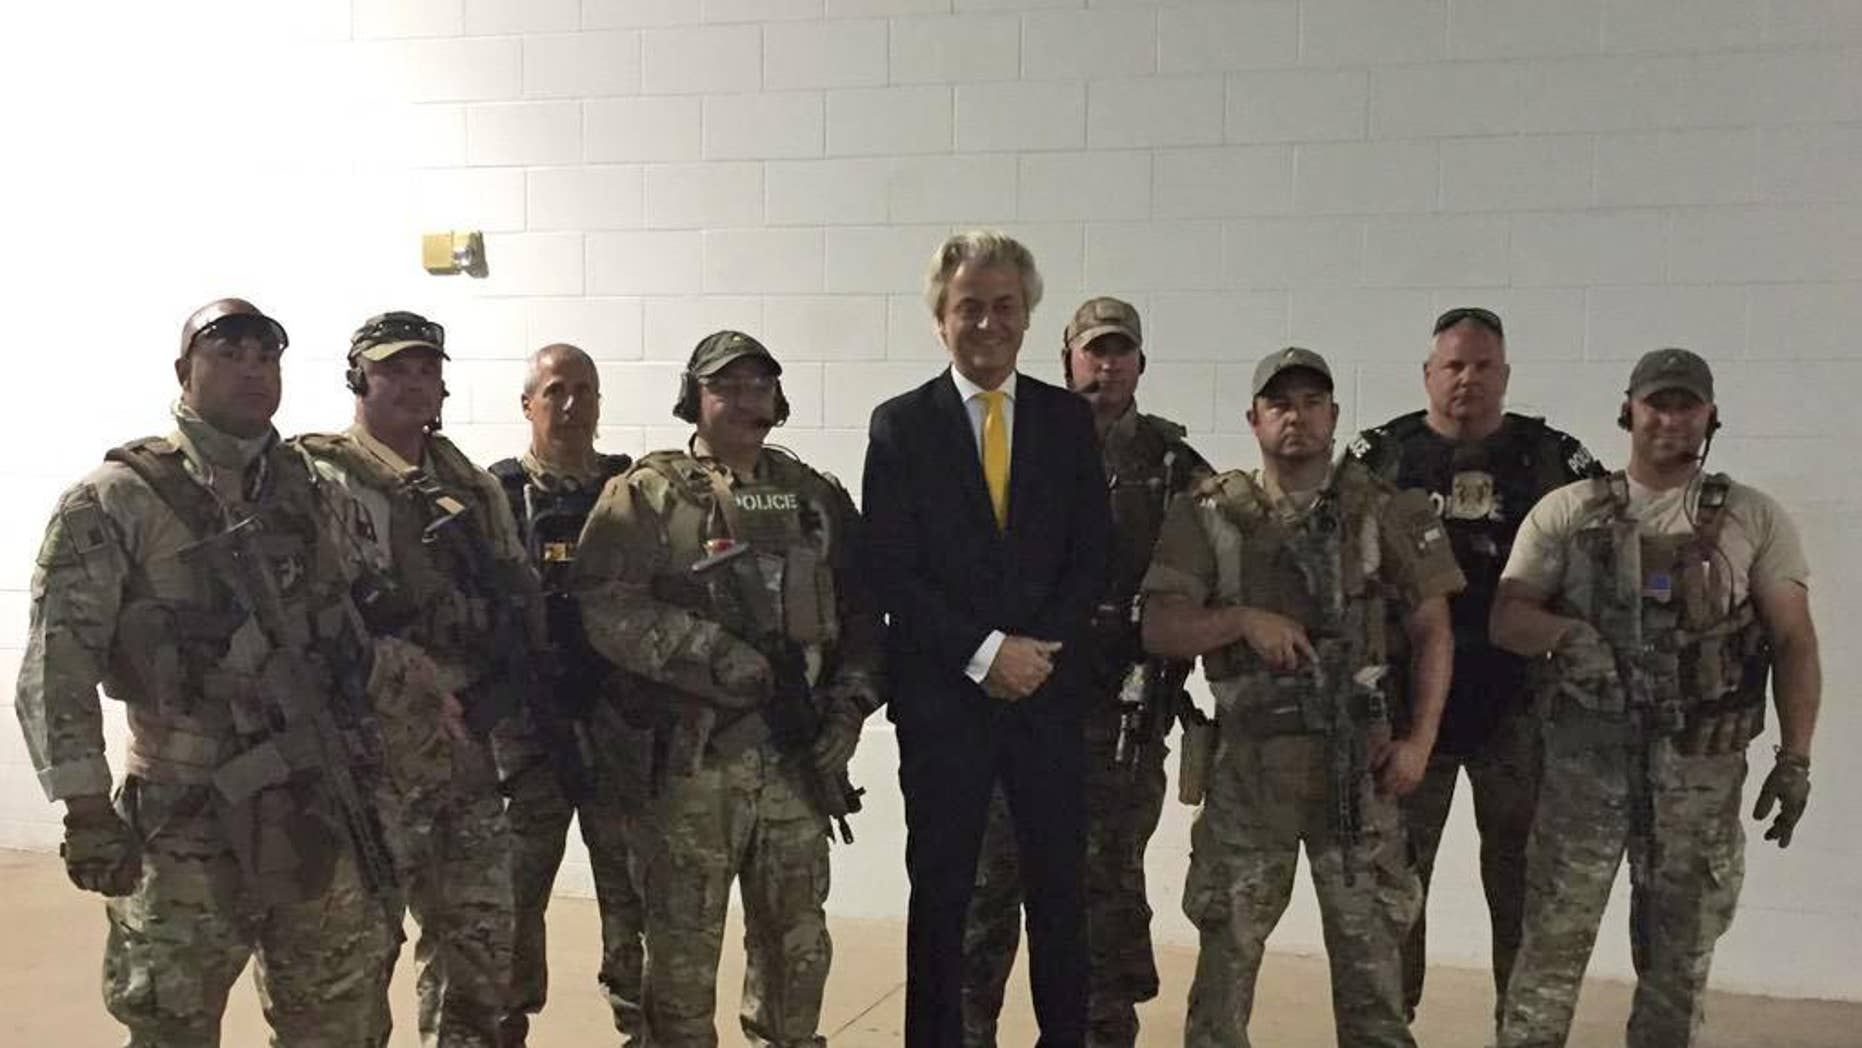 In this photo provided on Monday, May 4, 2015 by Geert Wilders, Dutch lawmaker Geert Wilders, leader of the anti-Islam Freedom Party, center, poses for a photograph with police officers who responded to a shooting outside a provocative contest for cartoon depictions of Prophet Muhammad in Garland, Texas. Two gunmen were killed Sunday, May 3, 2015 in Texas after opening fire on a security officer outside a provocative contest for cartoon depictions of Prophet Muhammad, and a bomb squad was called in to search their vehicle as a precaution, authorities said. (Geert Wilders via AP)